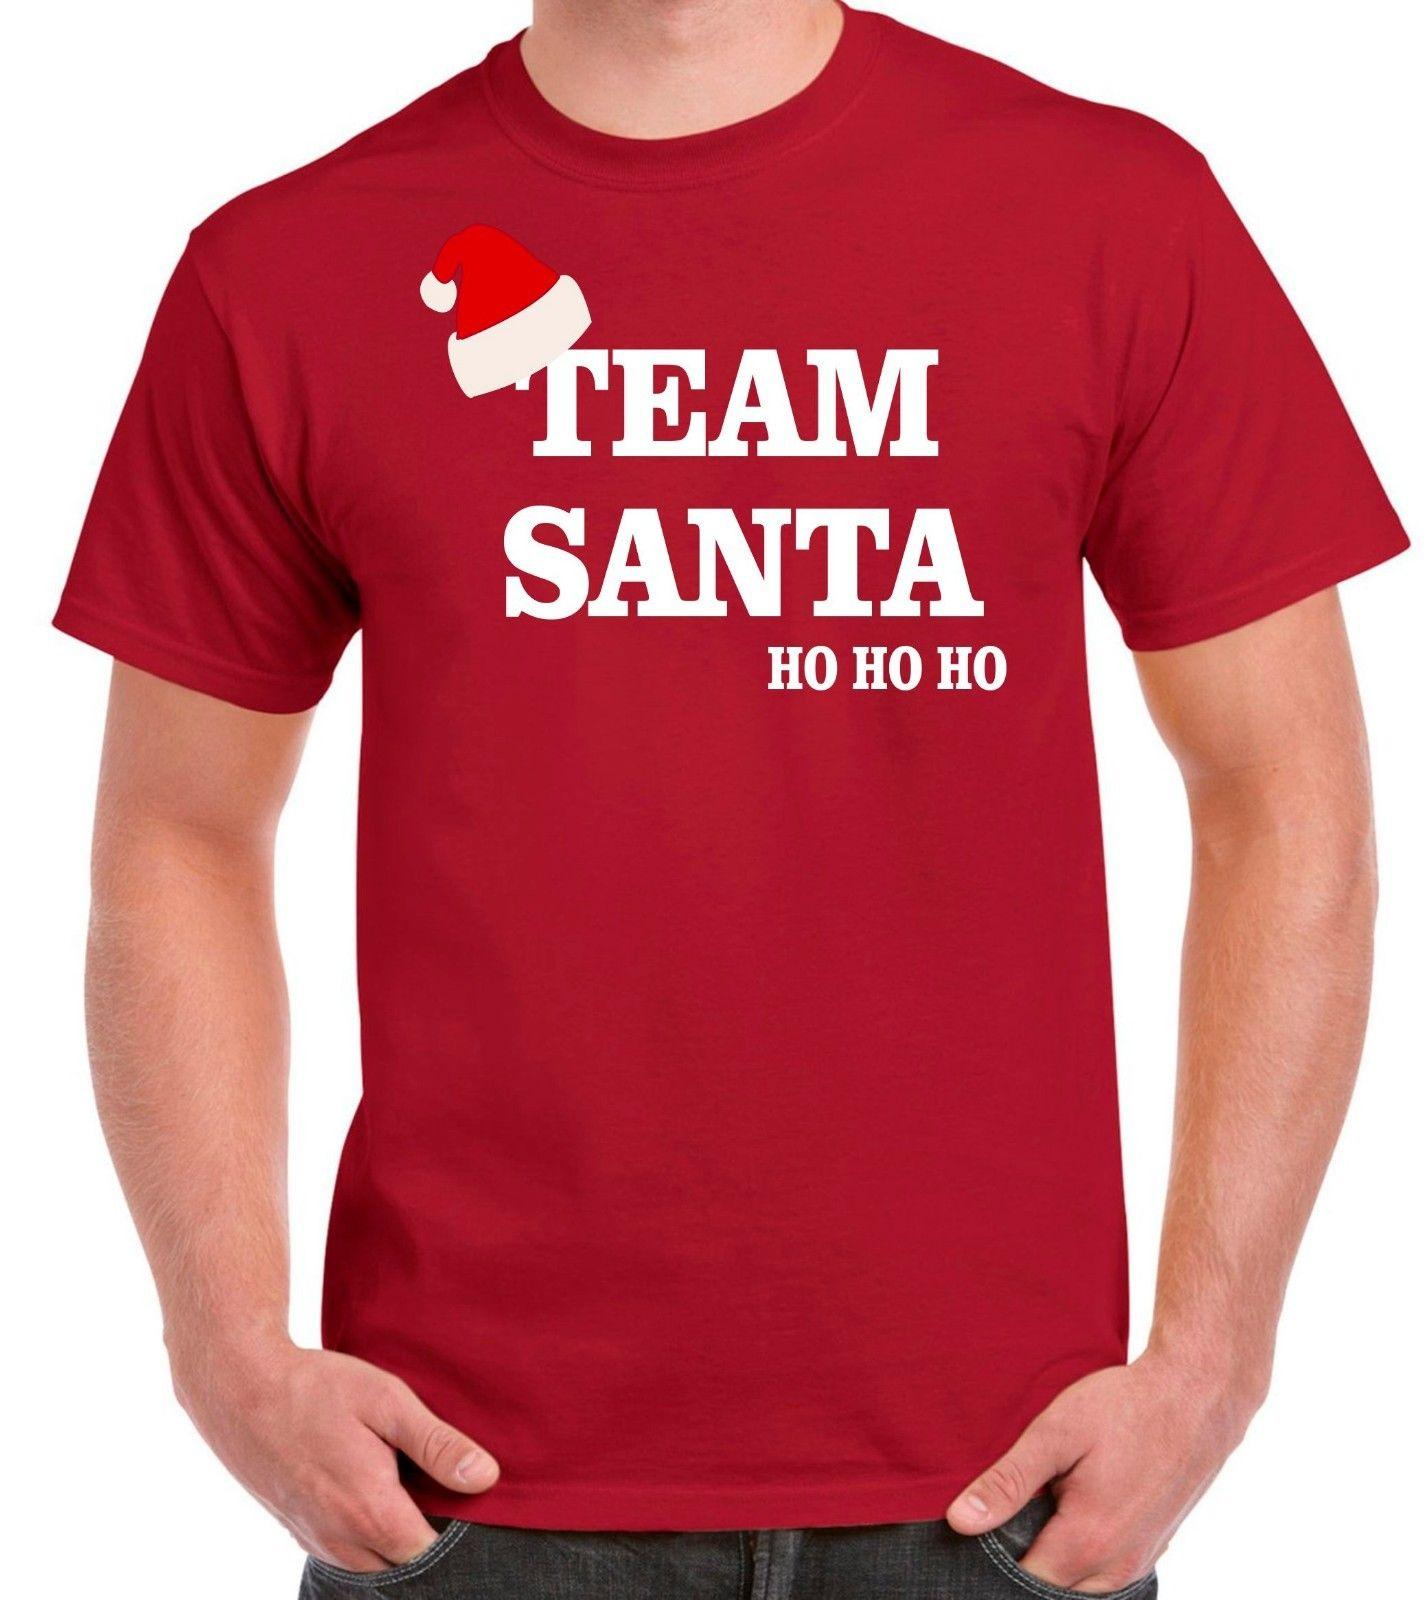 069c0d766ef Team Santa Men T Shirt Christmas Present Slogan Funny Joke Fashion Design  Trend Cool Casual Pride T Shirt Men Unisex New Funny Offensive T Shirts T  Shirt ...